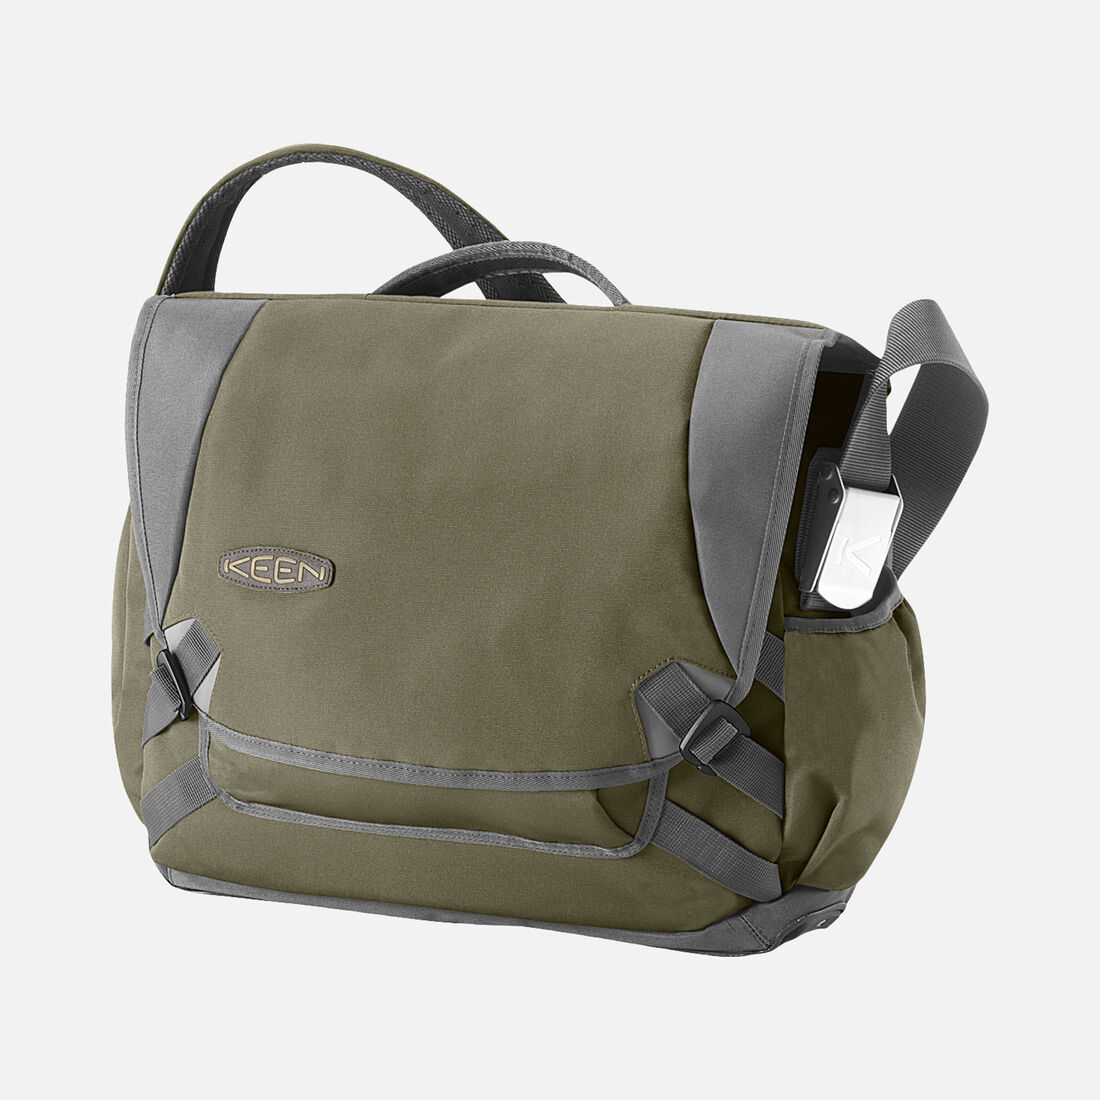 Harrison 15 Check Point Messenger Bag In Forest Night Large View